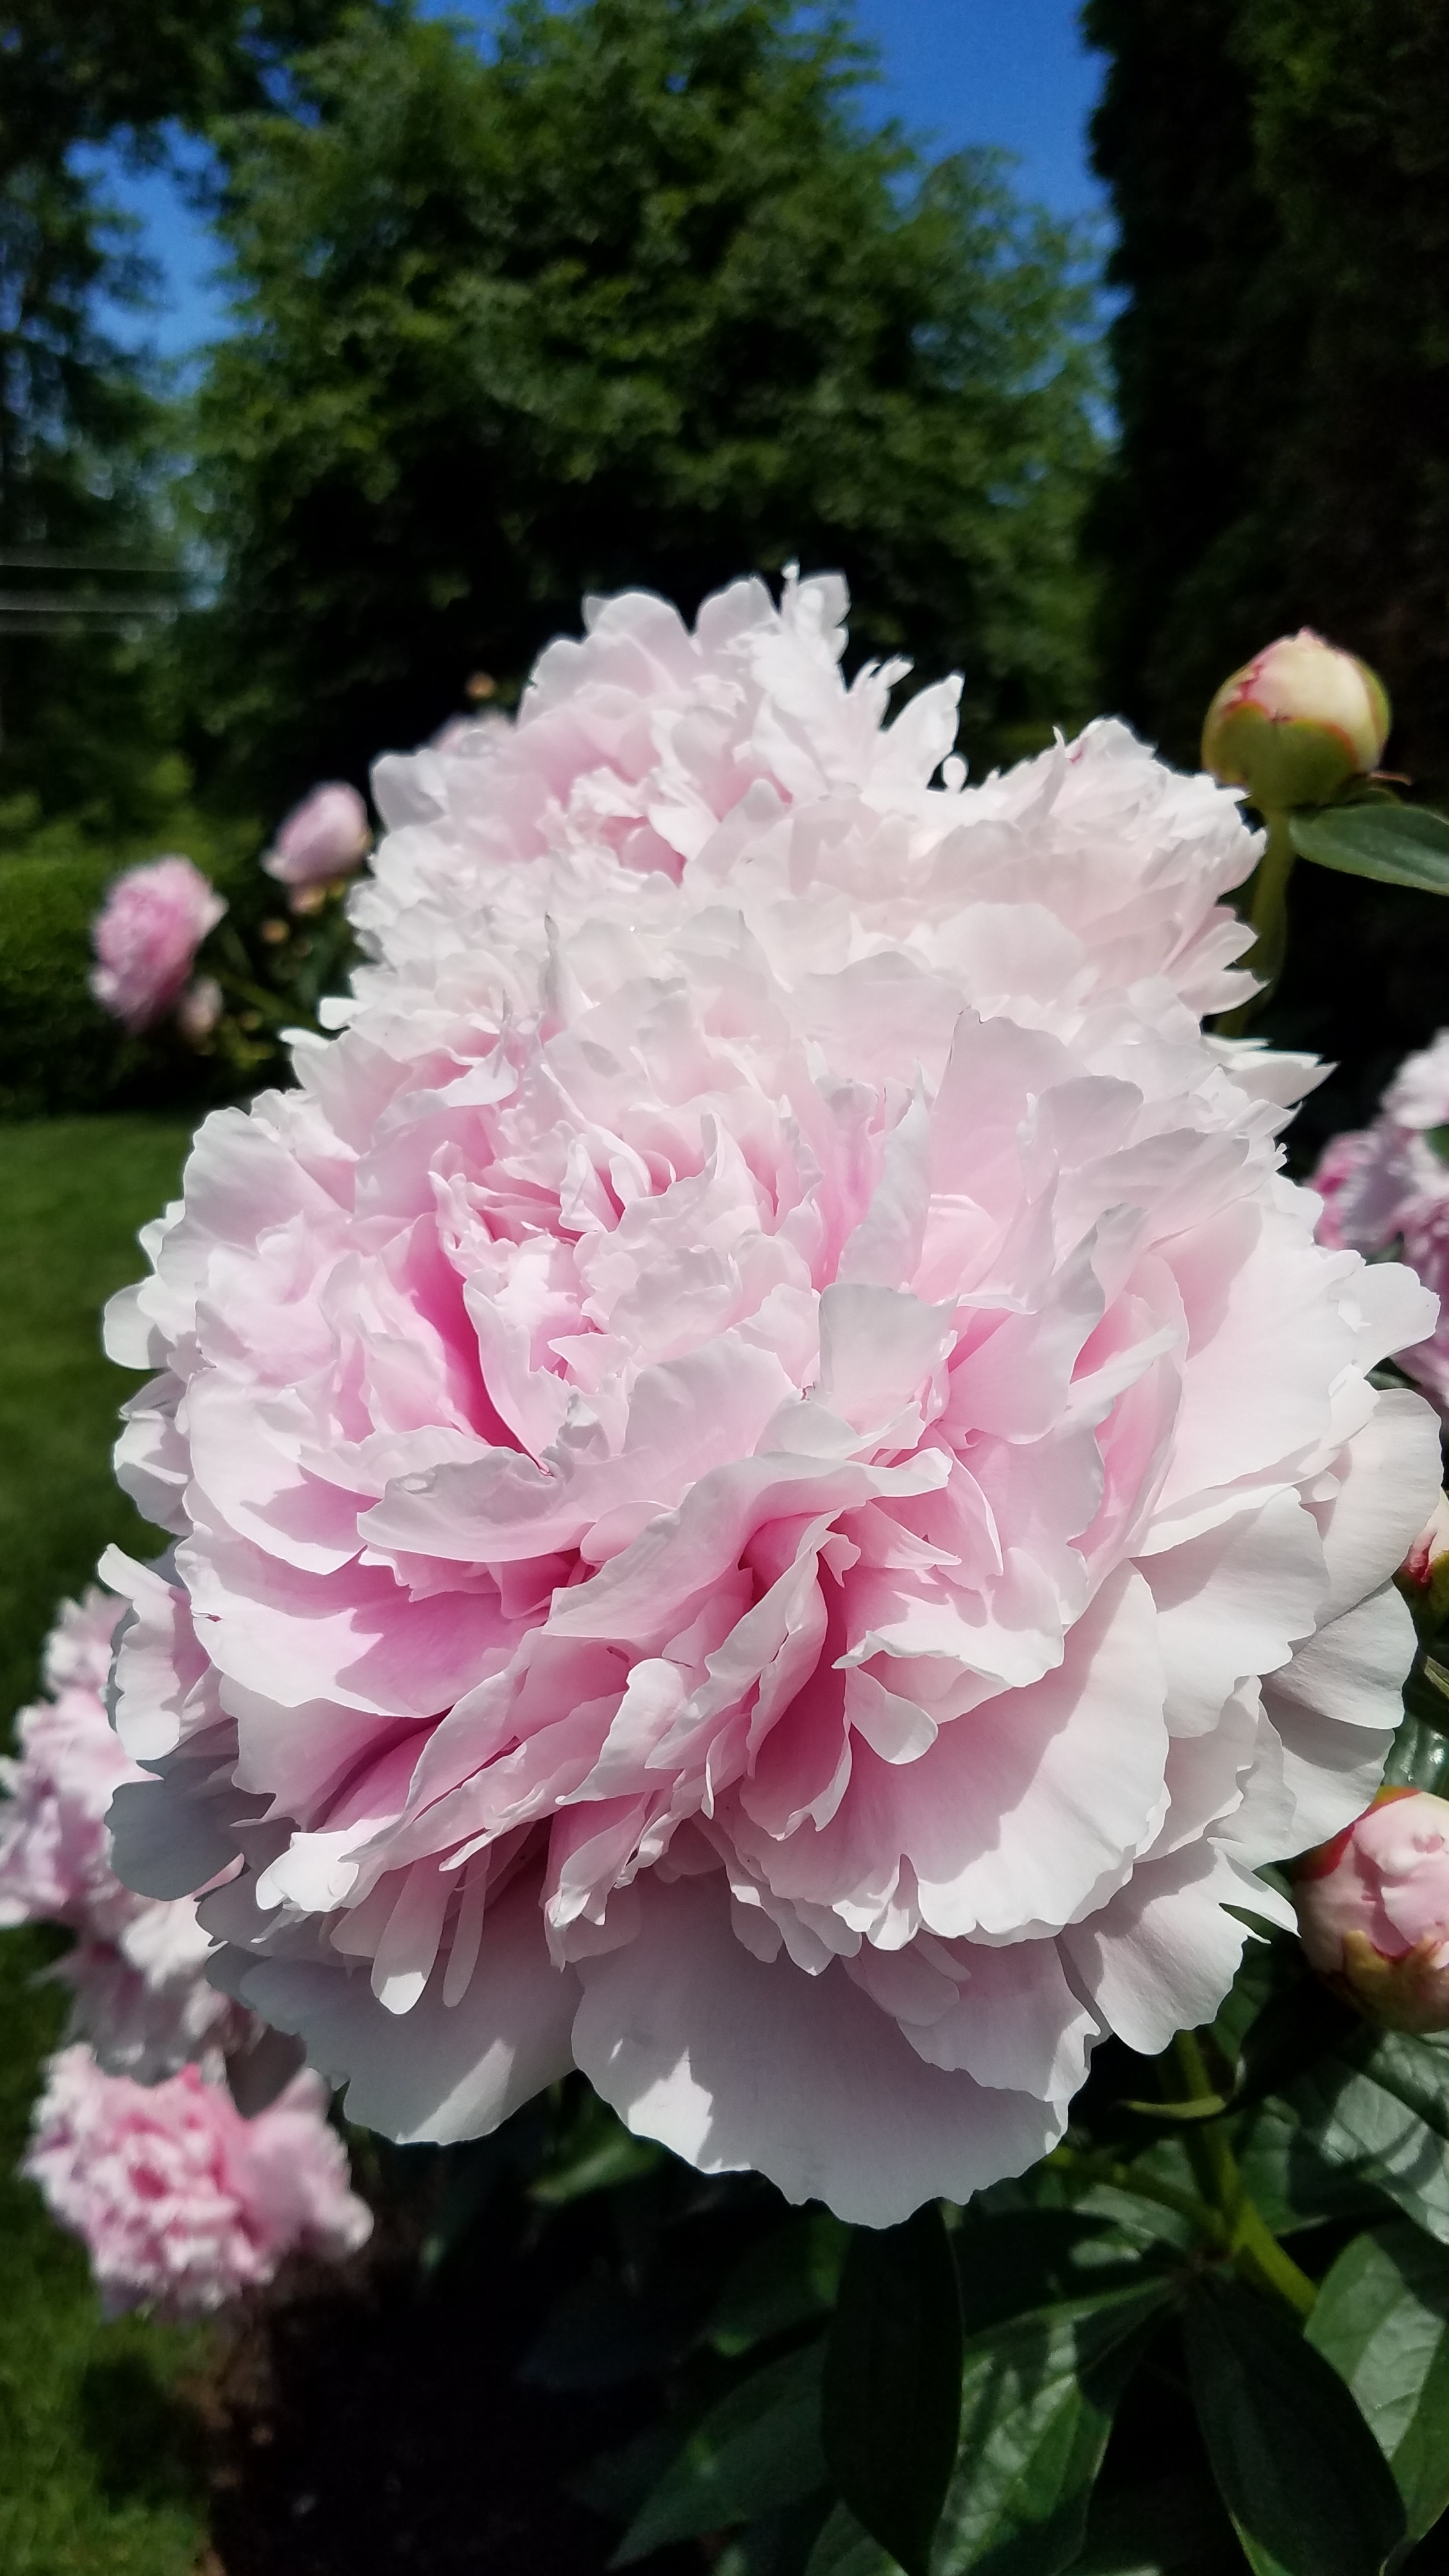 greenwich garden tour peonies riverside, CT.jpg